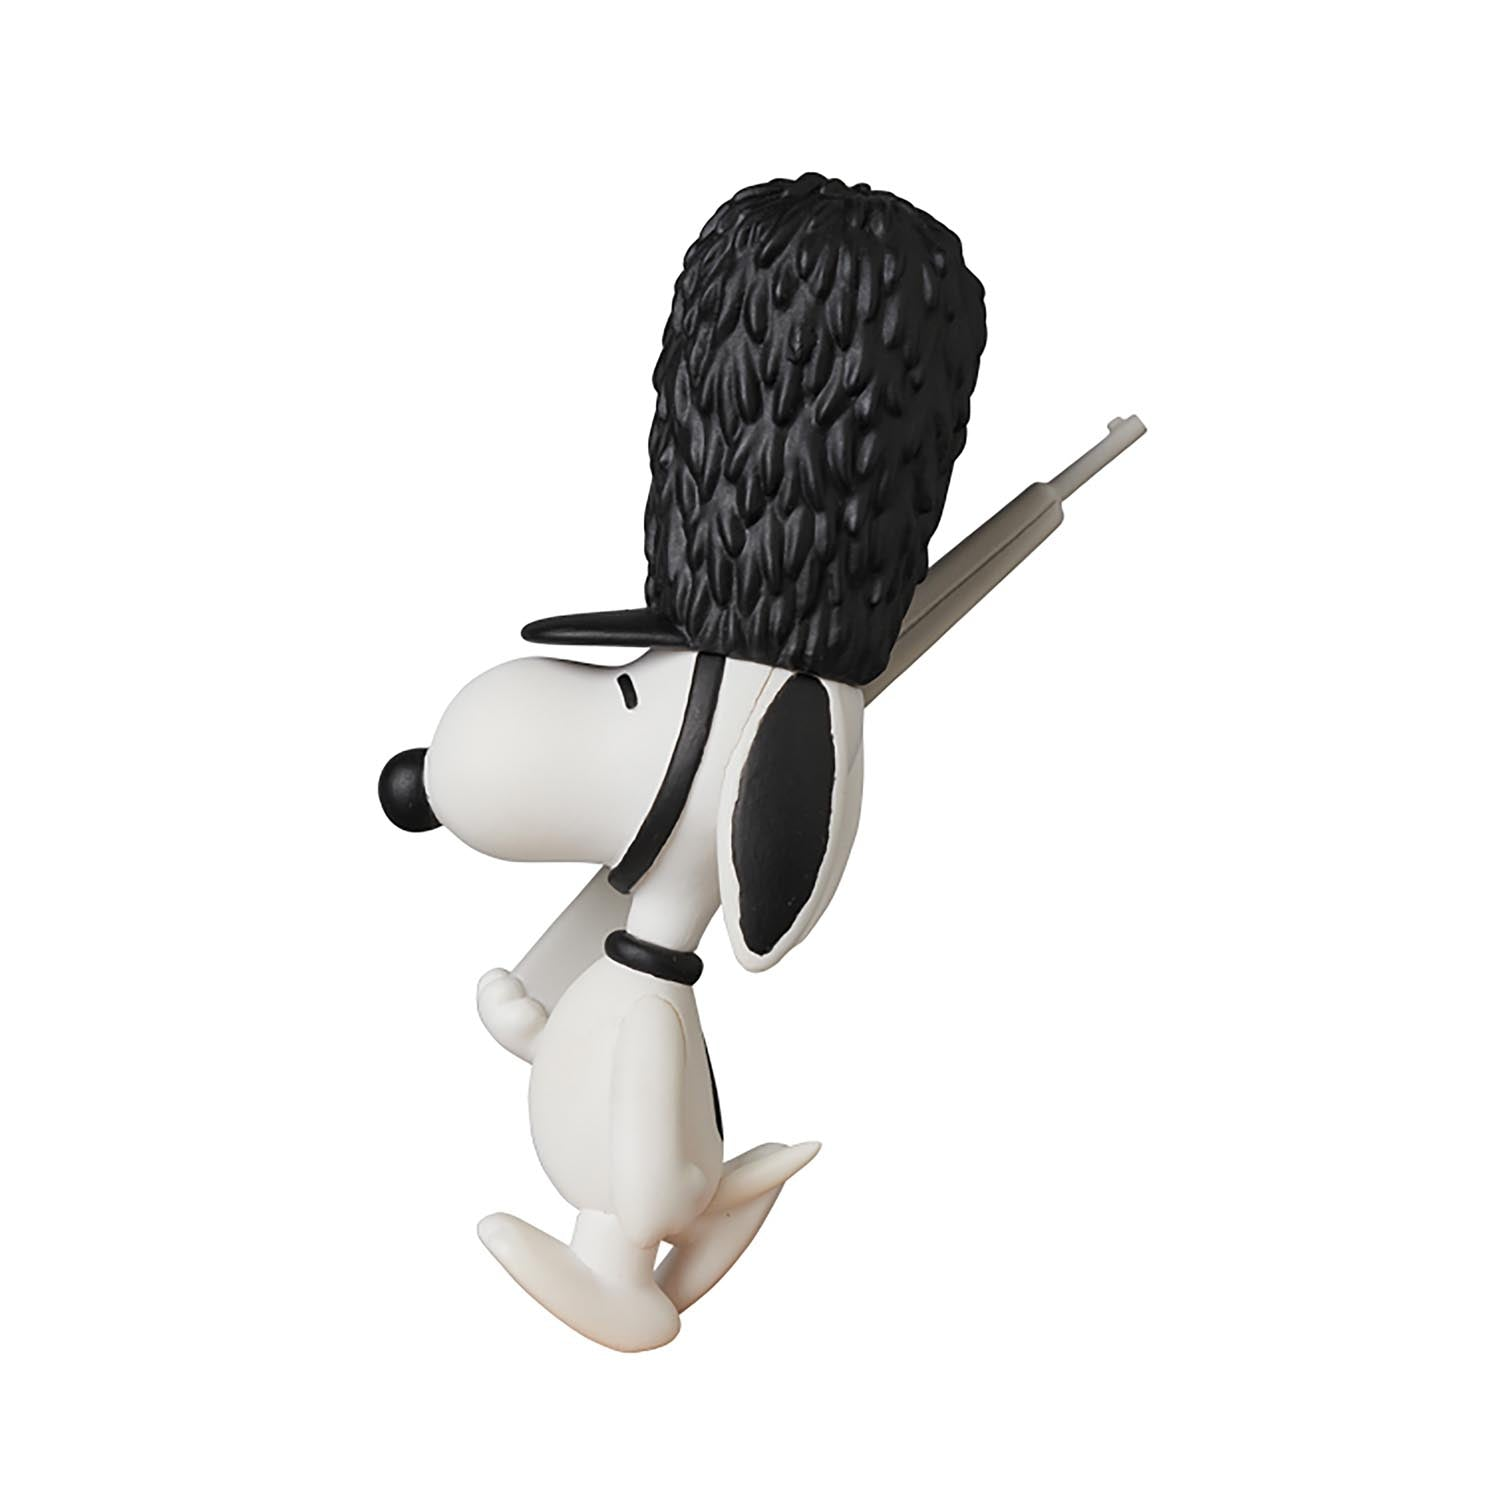 QUEEN'S GUARD SNOOPY